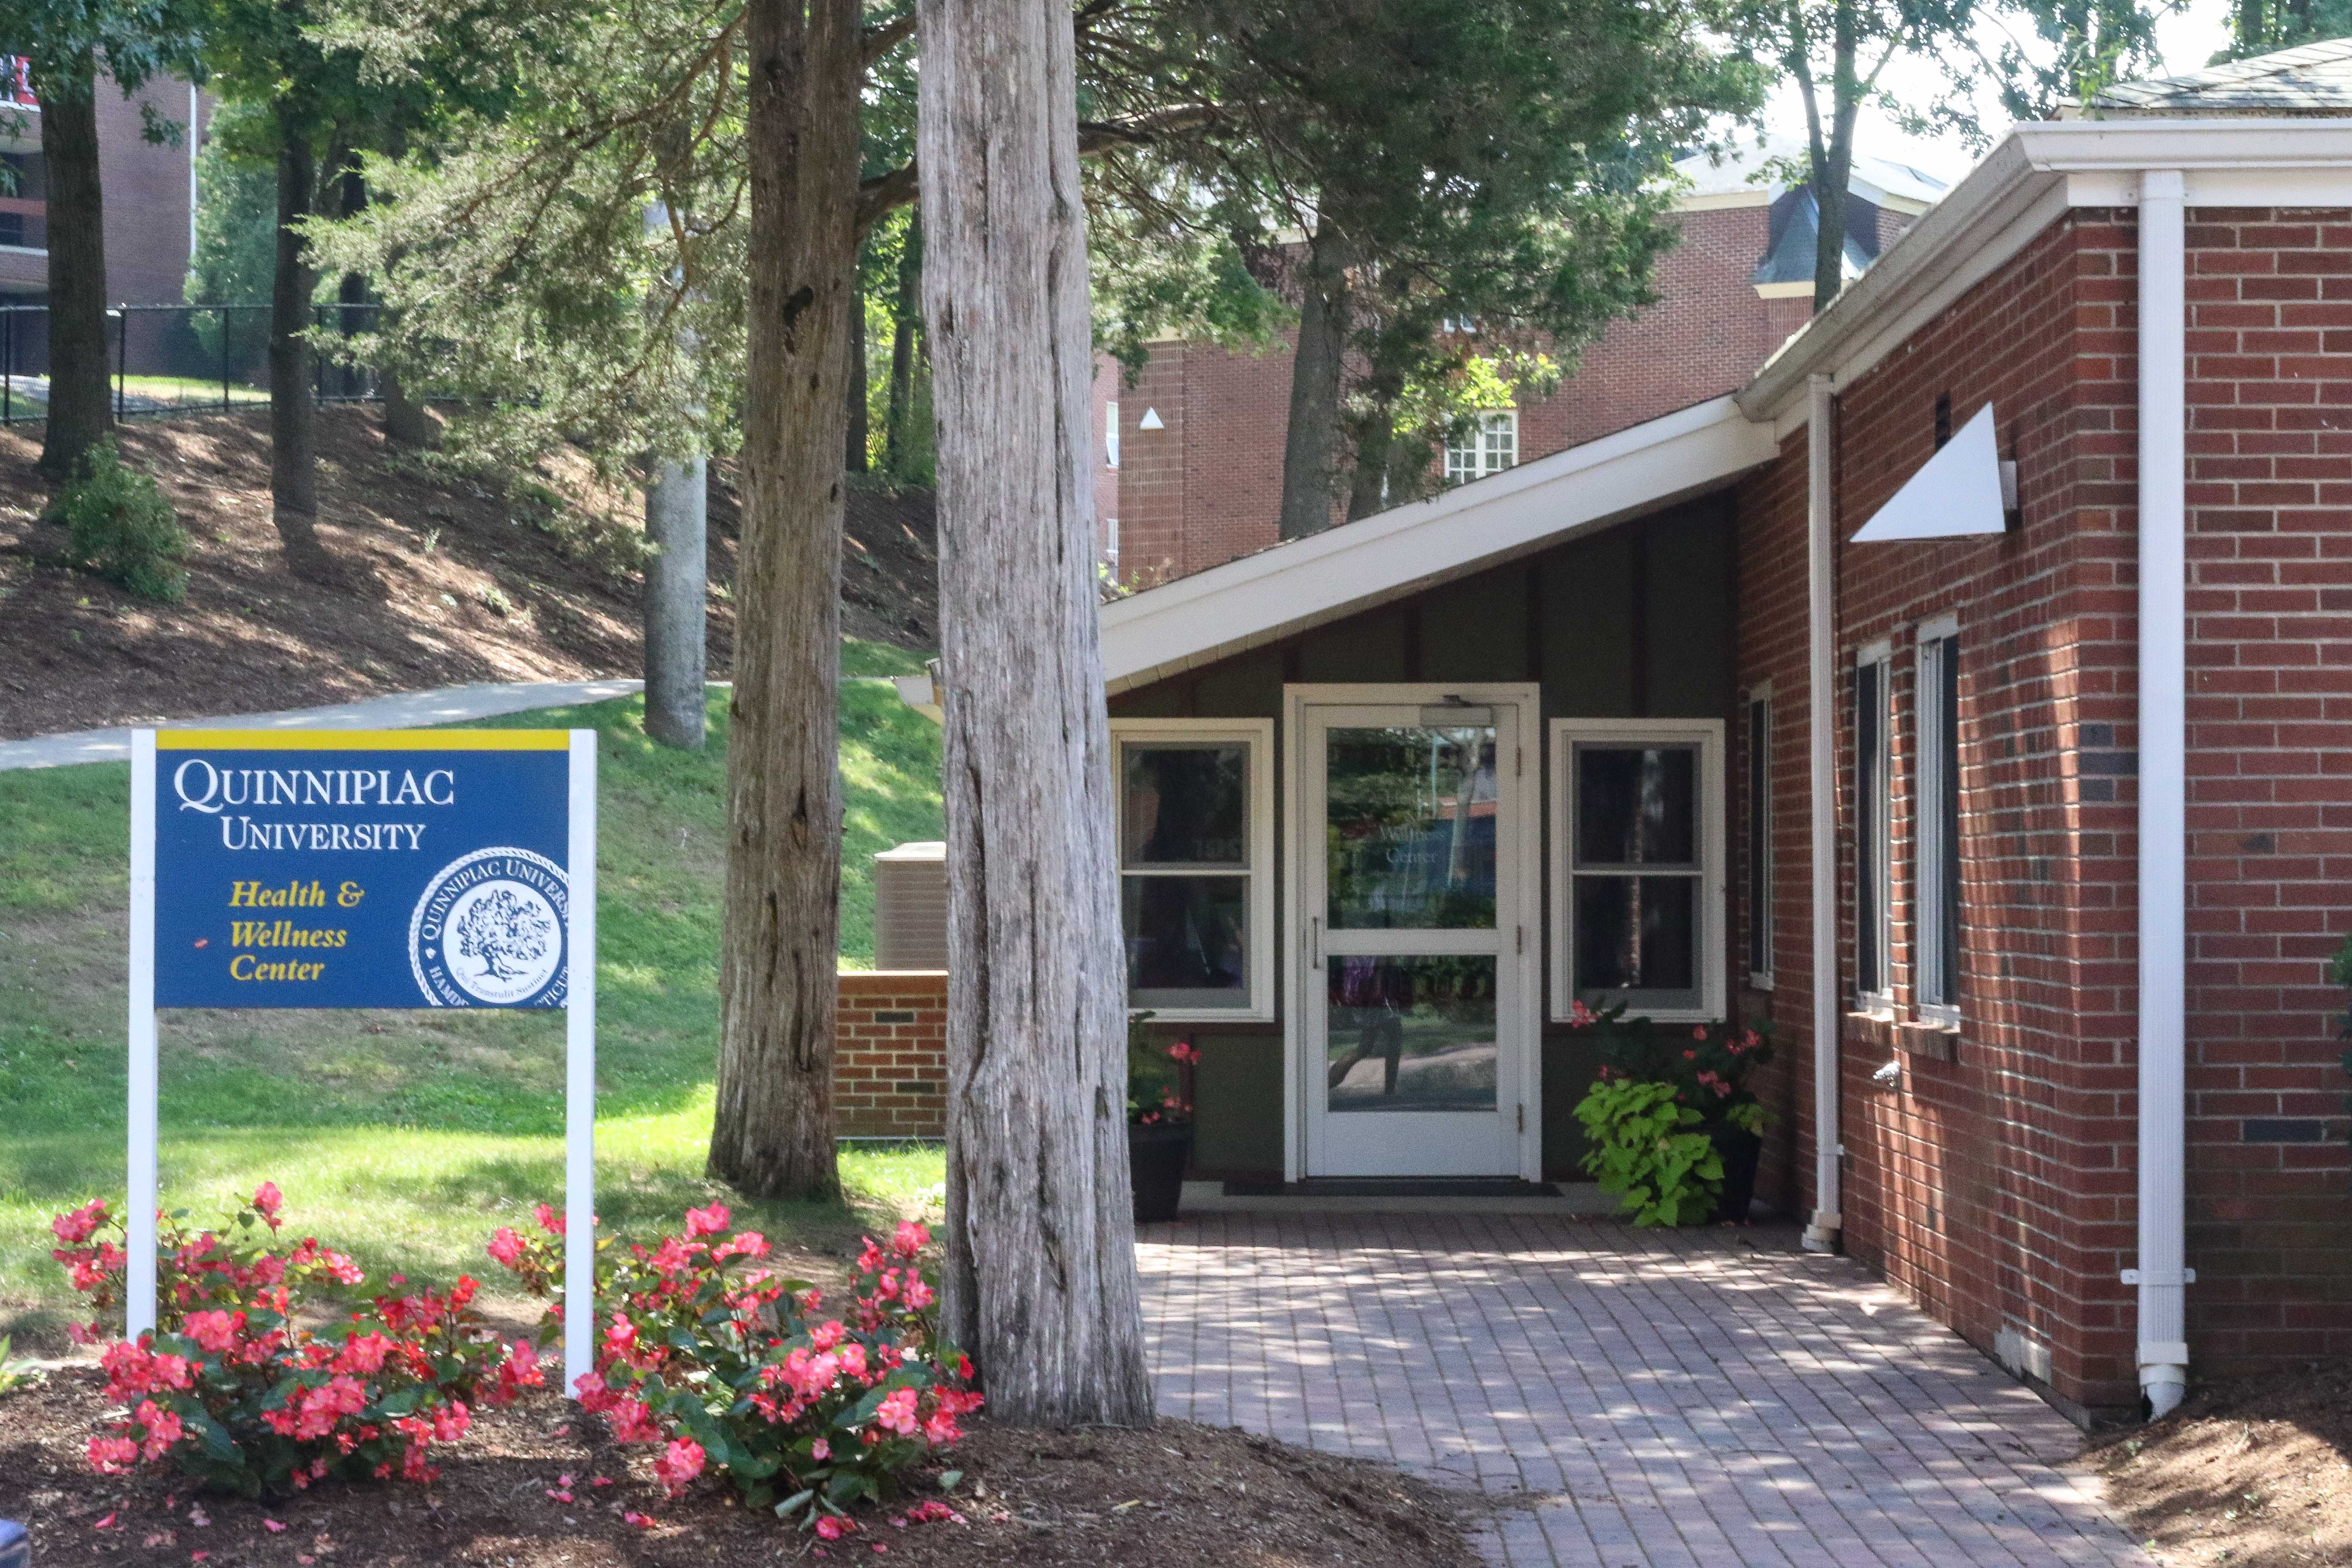 Quinnipiac expands student health services while cutting back on hours